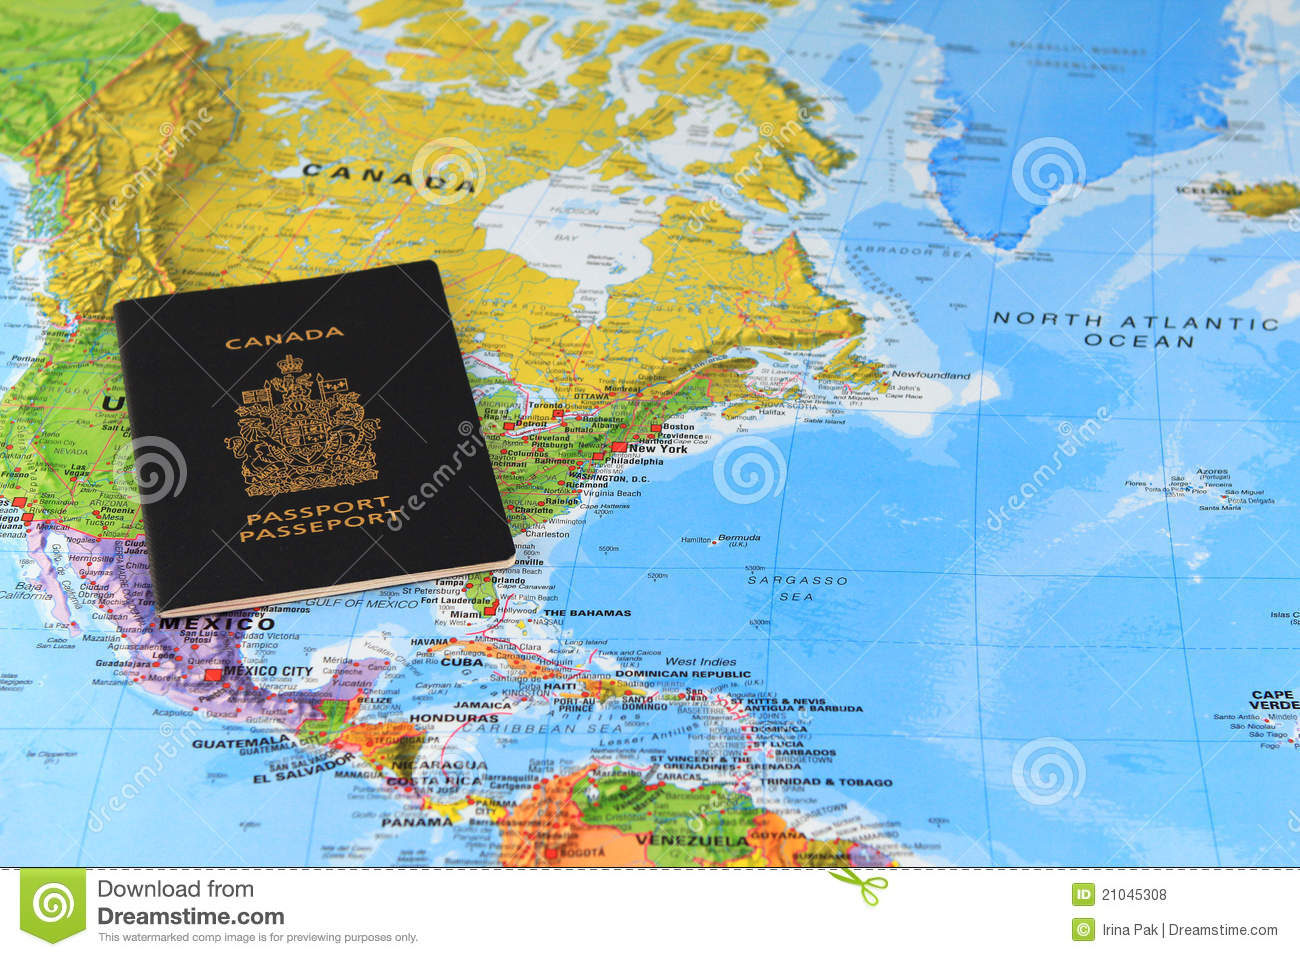 Canadian passport on the map stock photo image of country free canadian passport on the map gumiabroncs Images